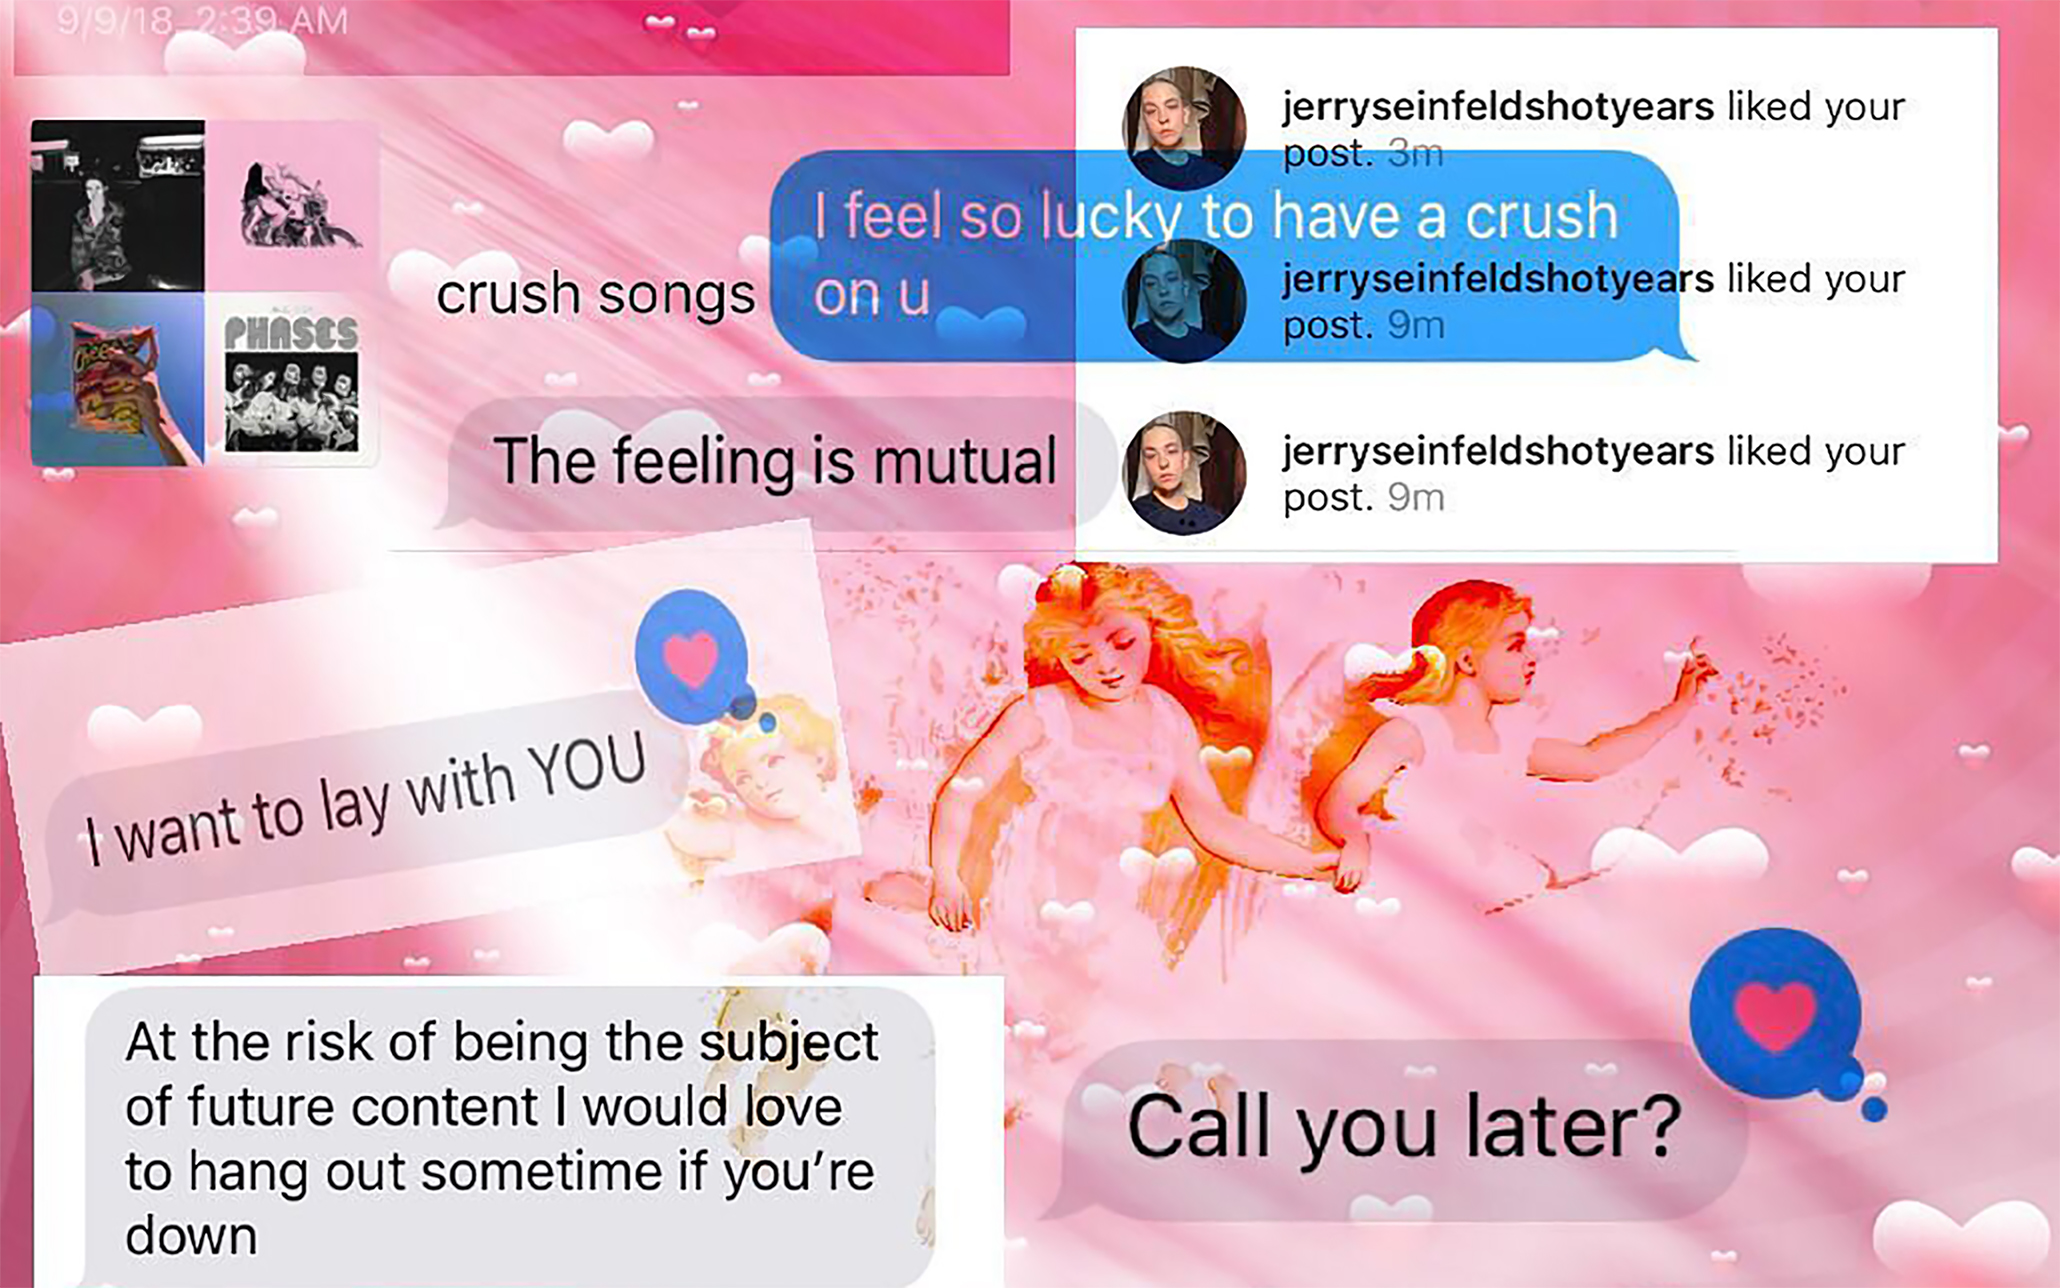 A meme created by @atmfiend about having a crush